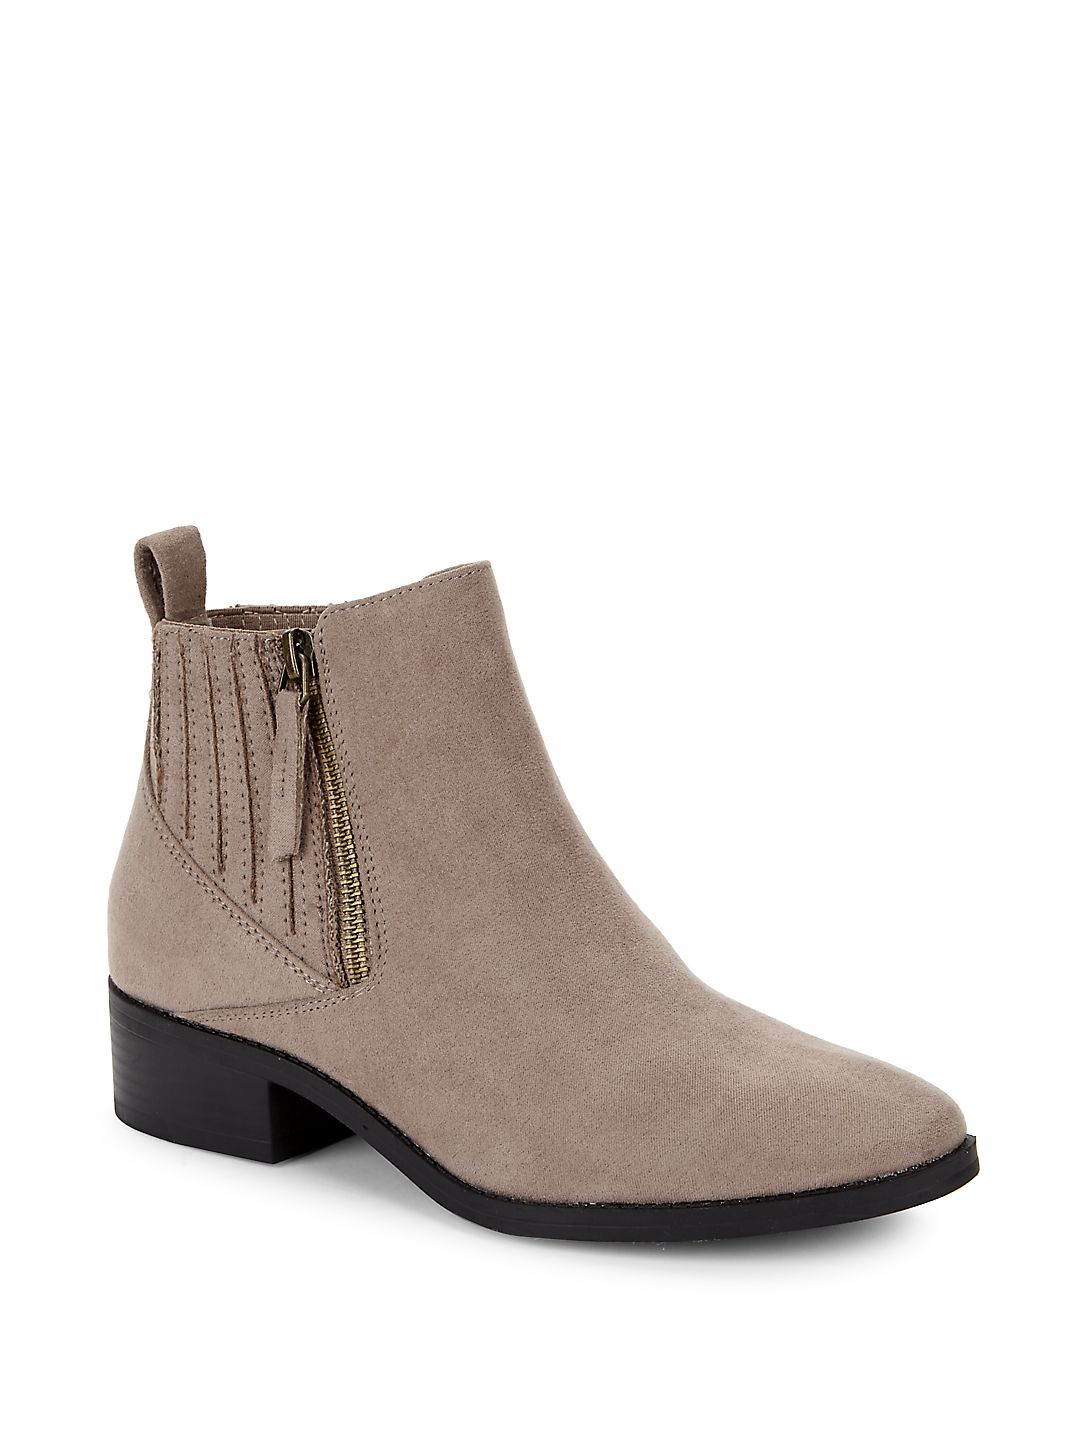 Willa Zipped Chelsea Boots